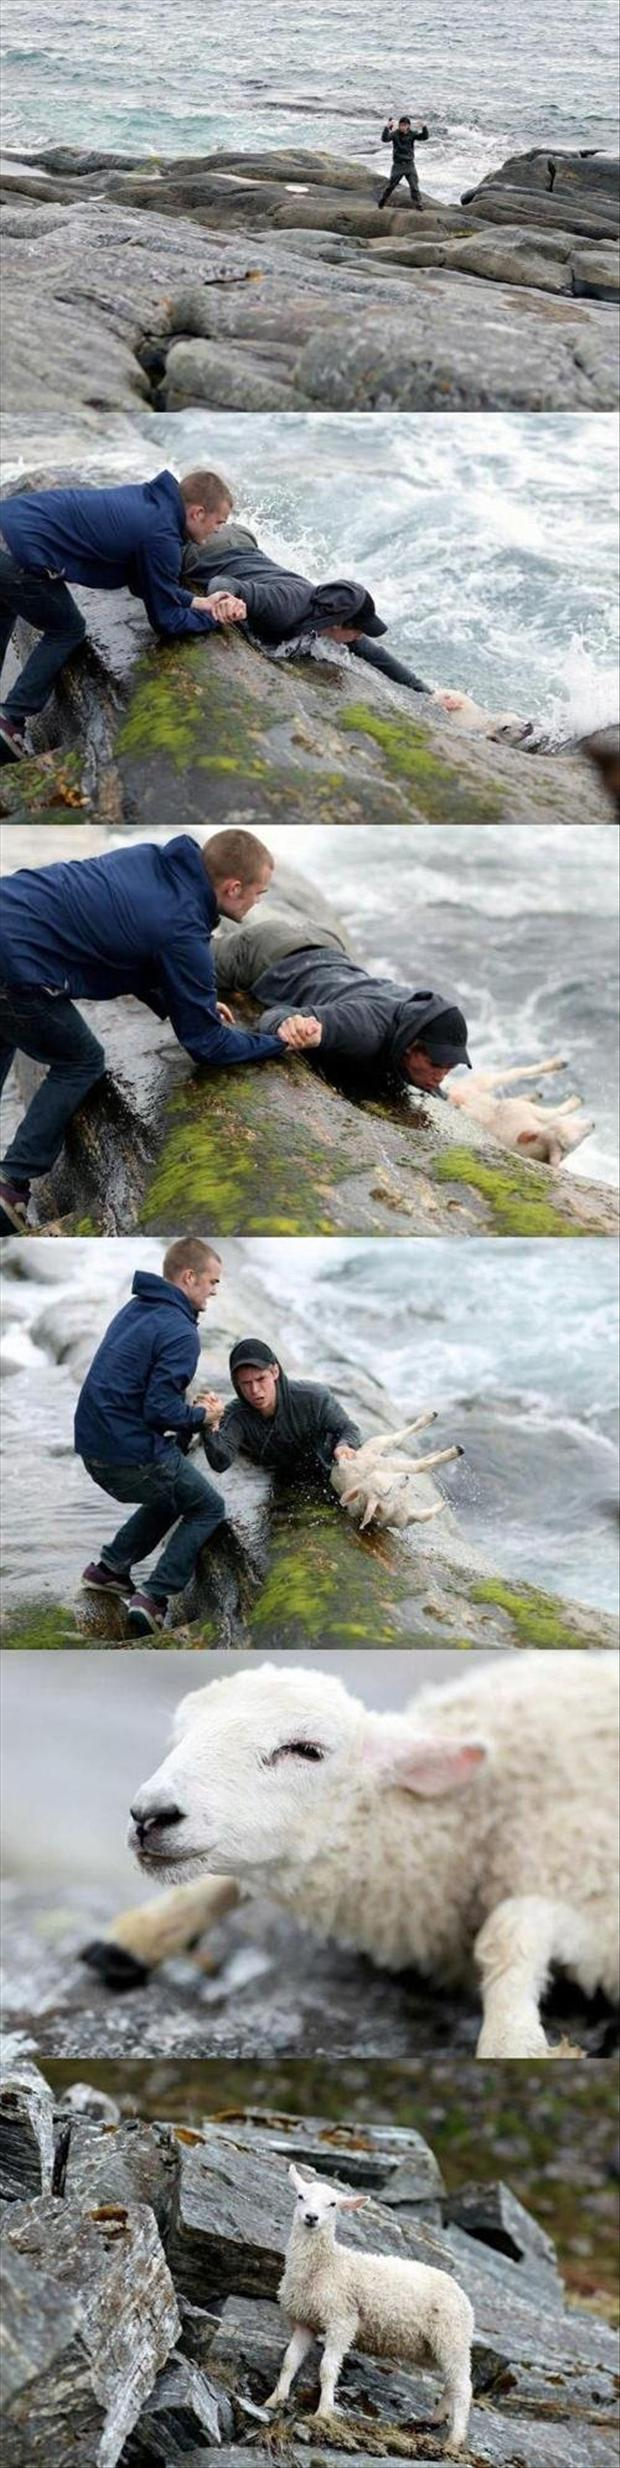 faith in humanity restored (6)